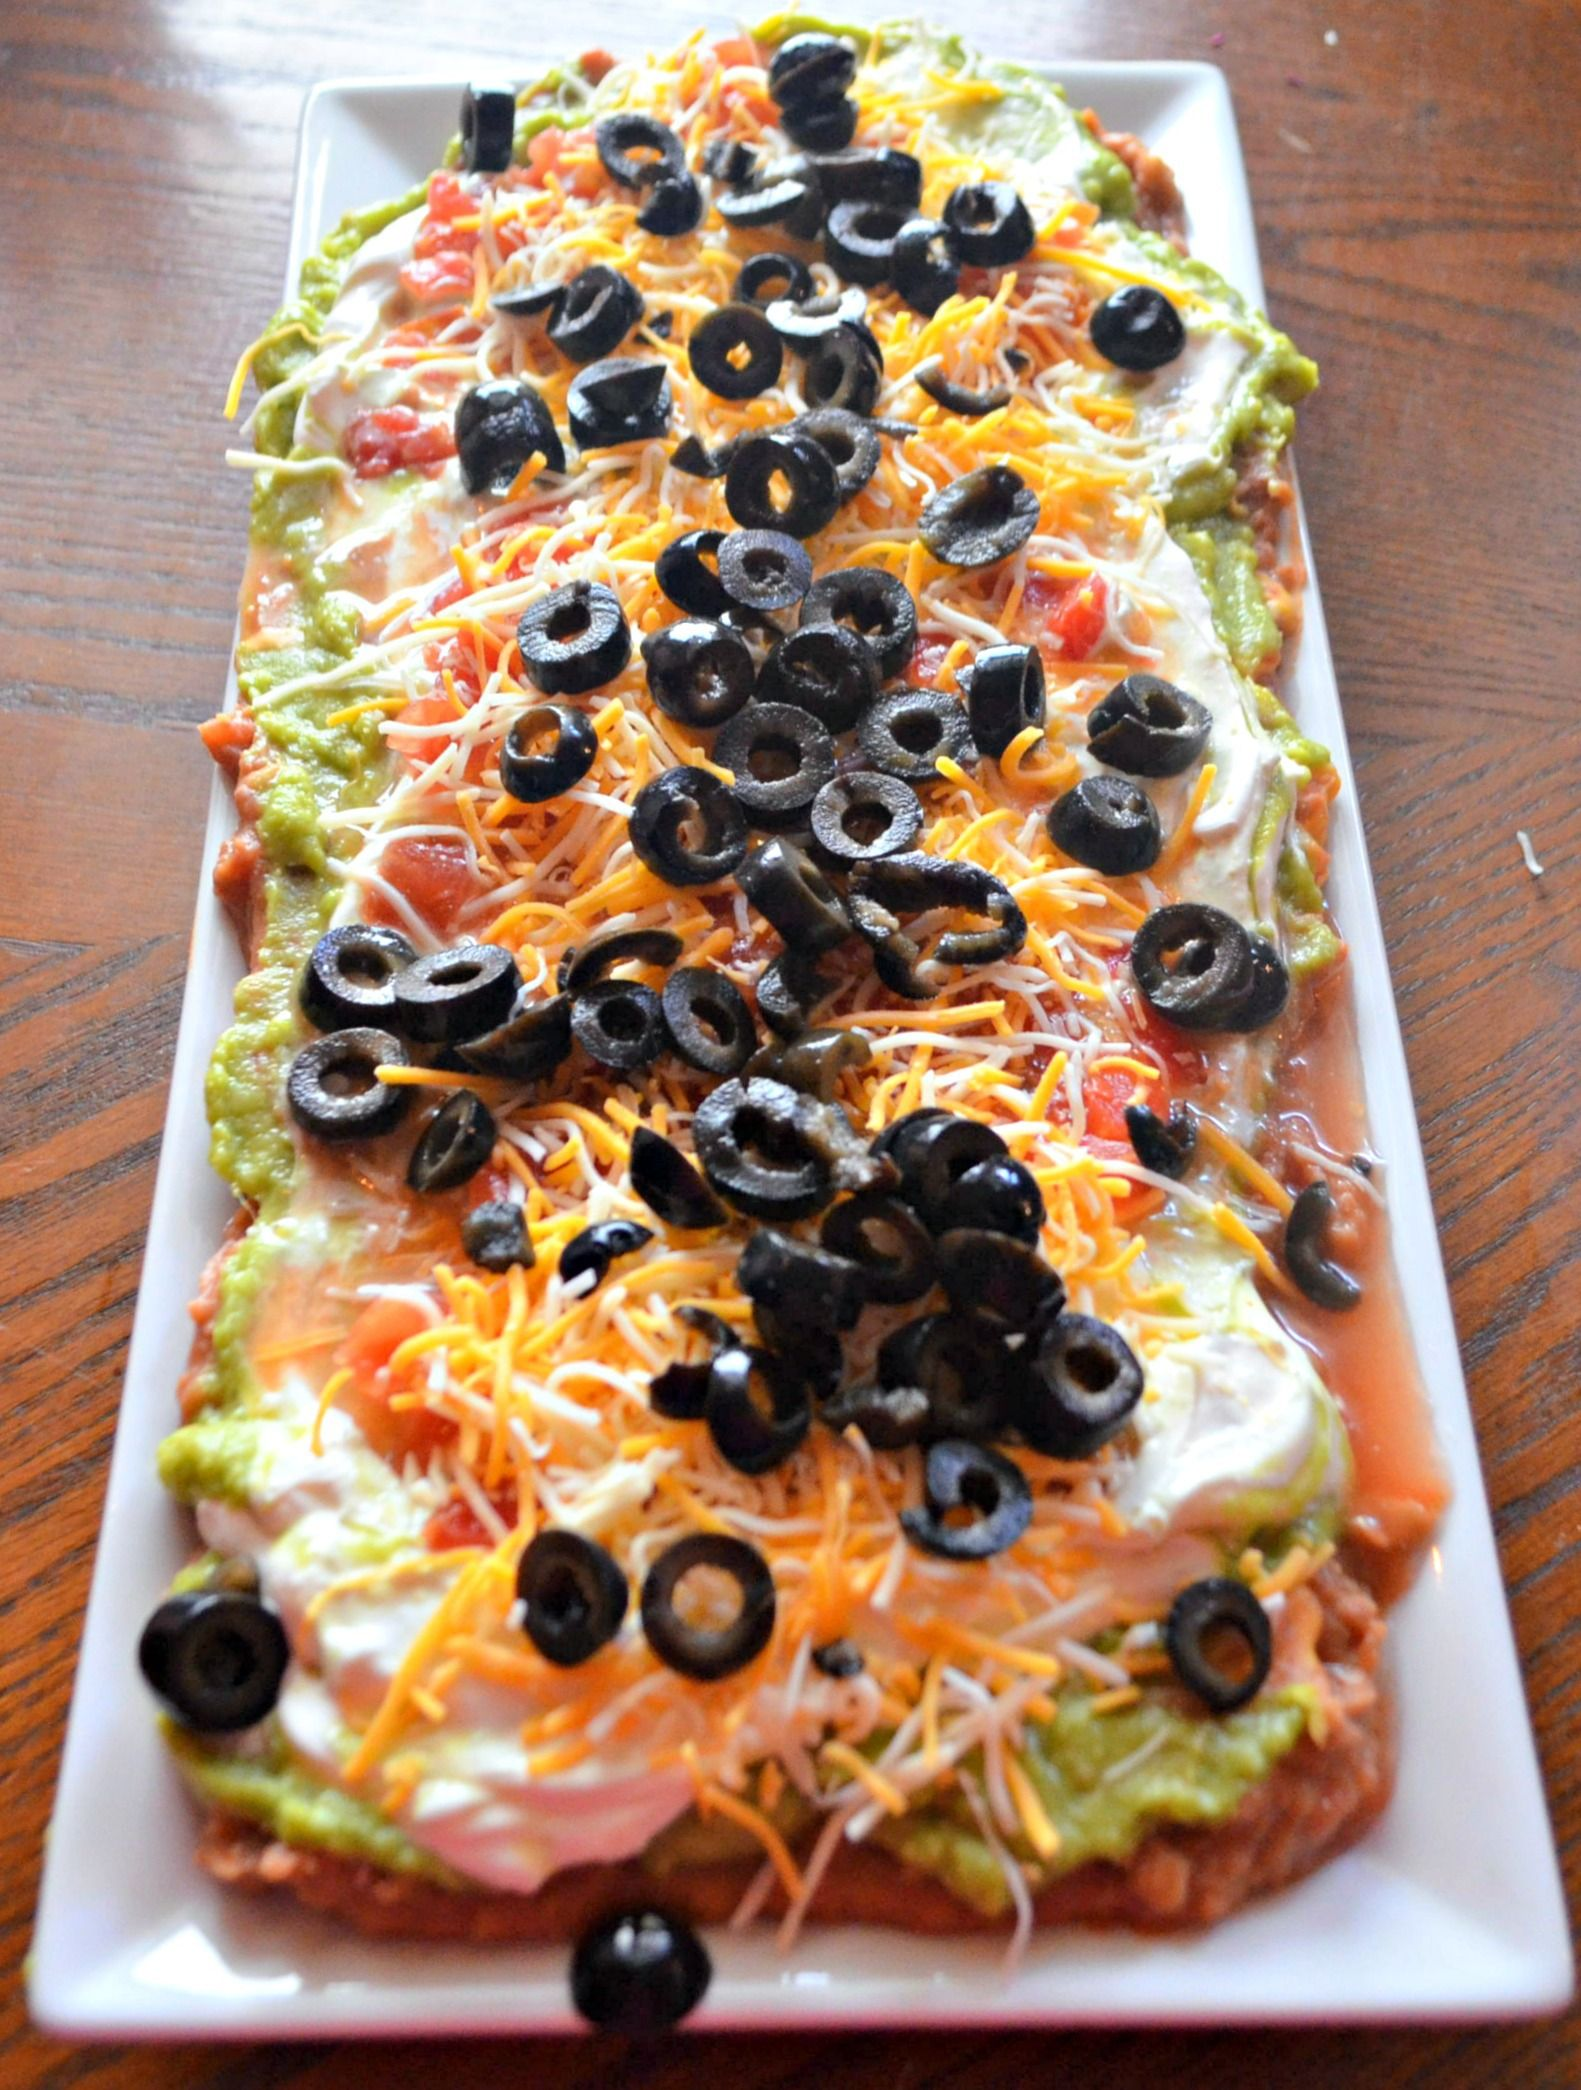 Velveeta 7 layer mexican dip recipe and photo by blogger alison velveeta 7 layer mexican dip recipe and photo by blogger alison wright of www forumfinder Images